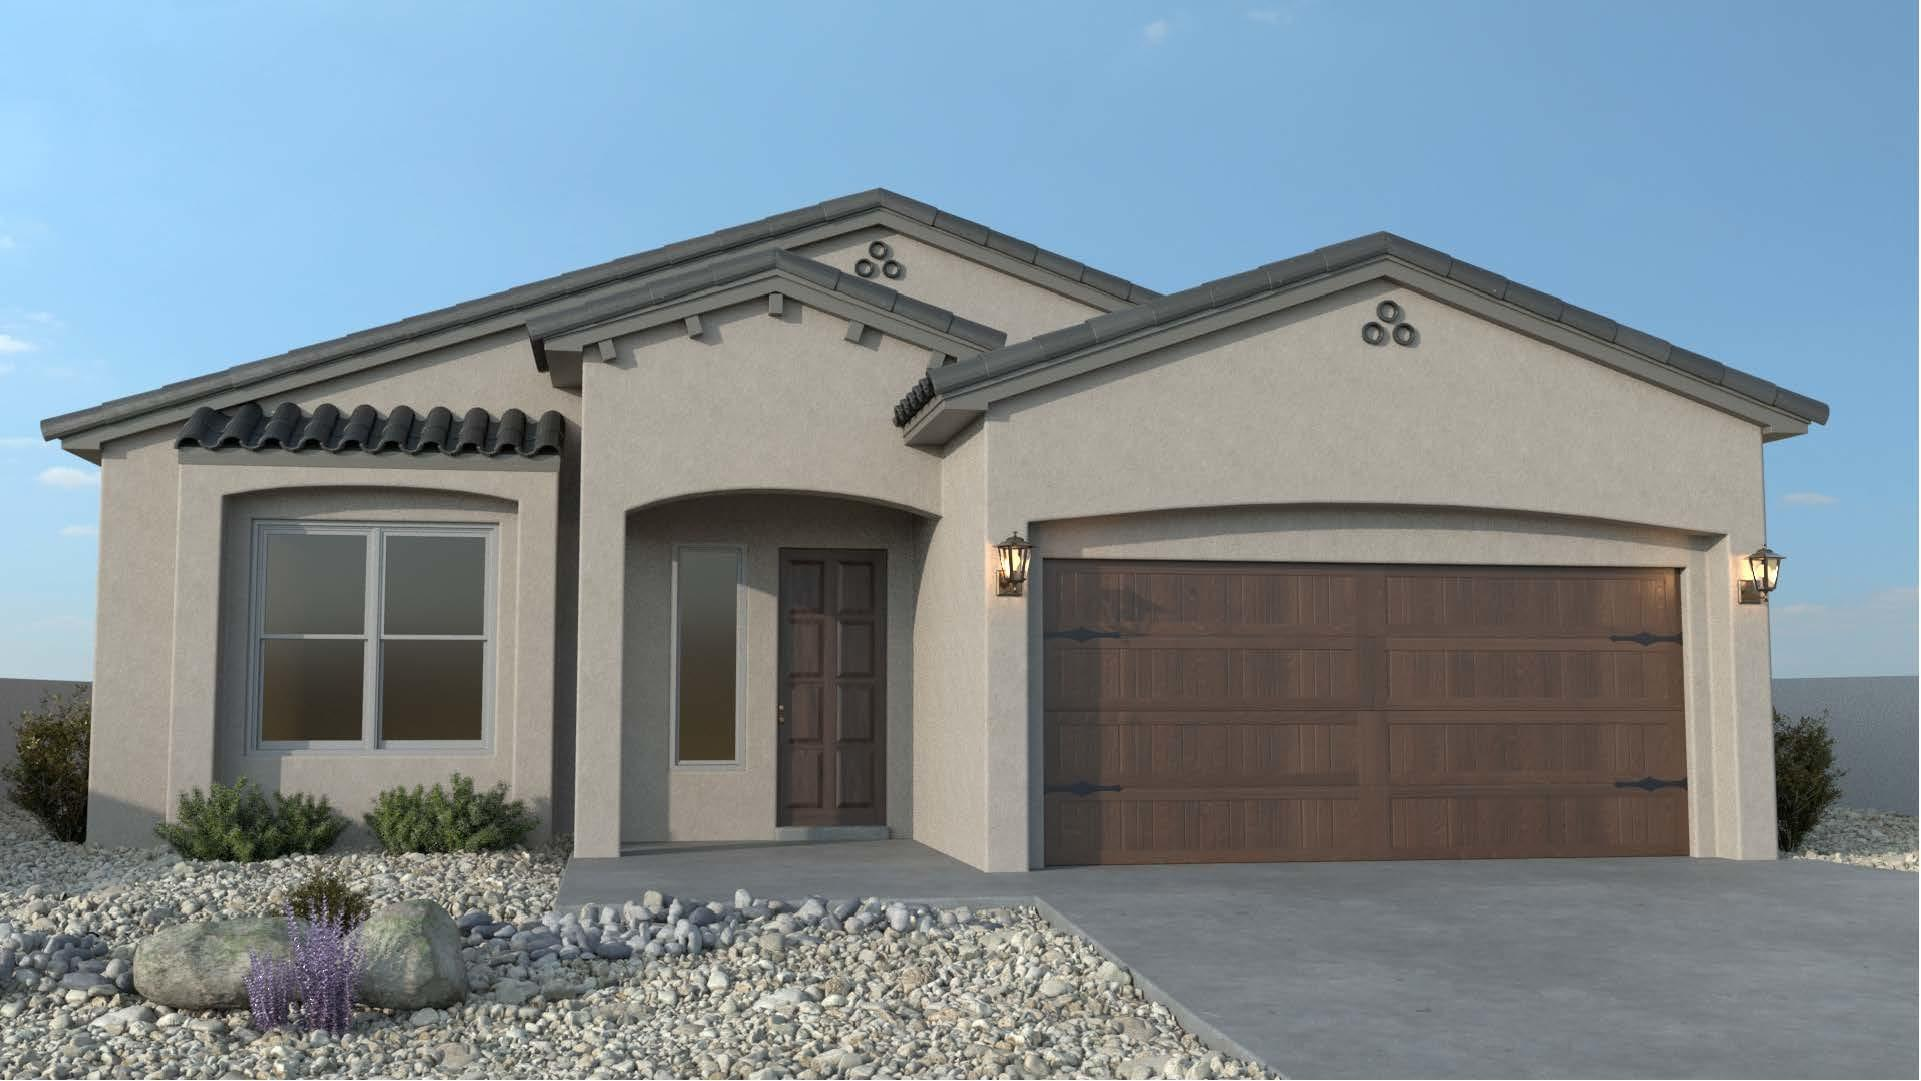 *UNDER CONSTRUCTION Contract prior to completion, you still have time to pick some of the finishes!. This Javalina floor plan is very functional and open (see floor plan in documents) Dream White Kitchen with all appliances included. Wood look tile in all of the main areas, carpet only in bedrooms. Welcome to your brand new RayLee Home